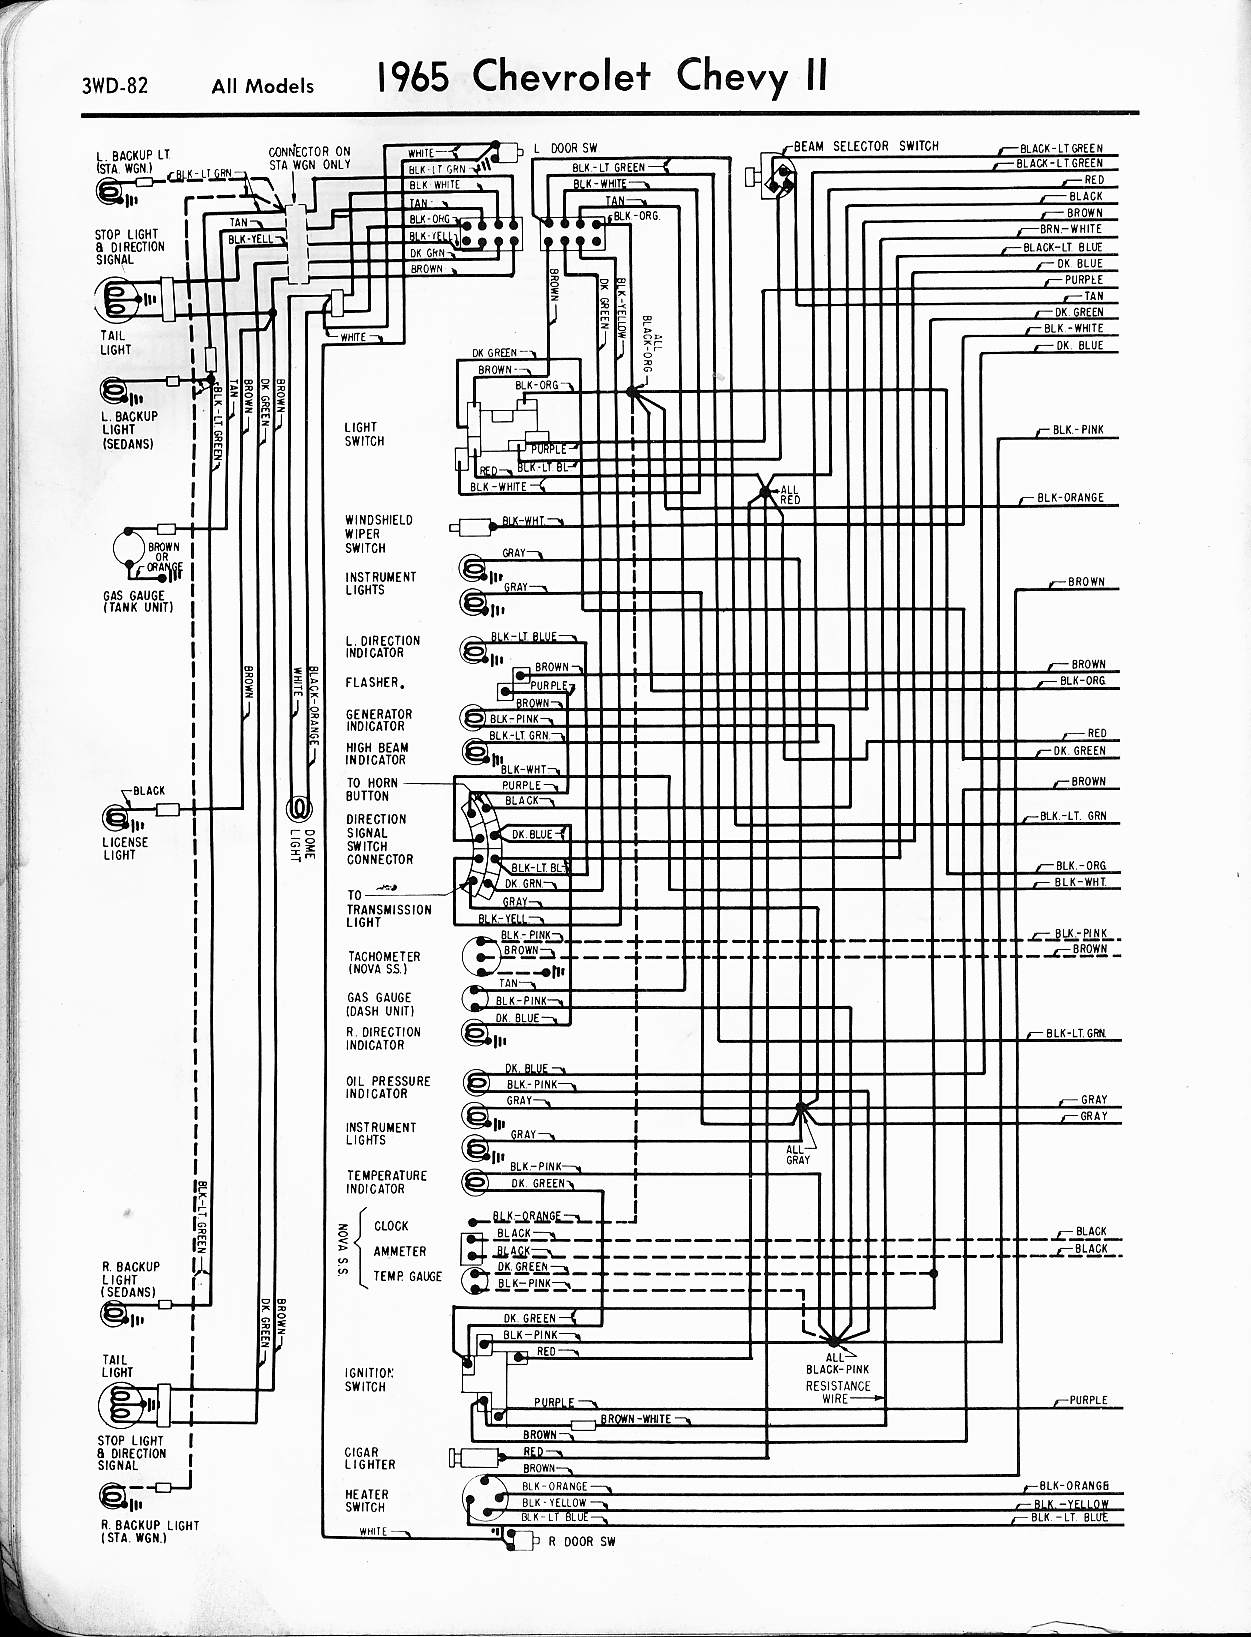 1965 nova starter wiring diagram wiring circuit \u2022 71 nova wiring diagram chevy diagrams rh wiring wizard com 1965 chevy nova wiring diagram 1965 chevy nova wiring diagram